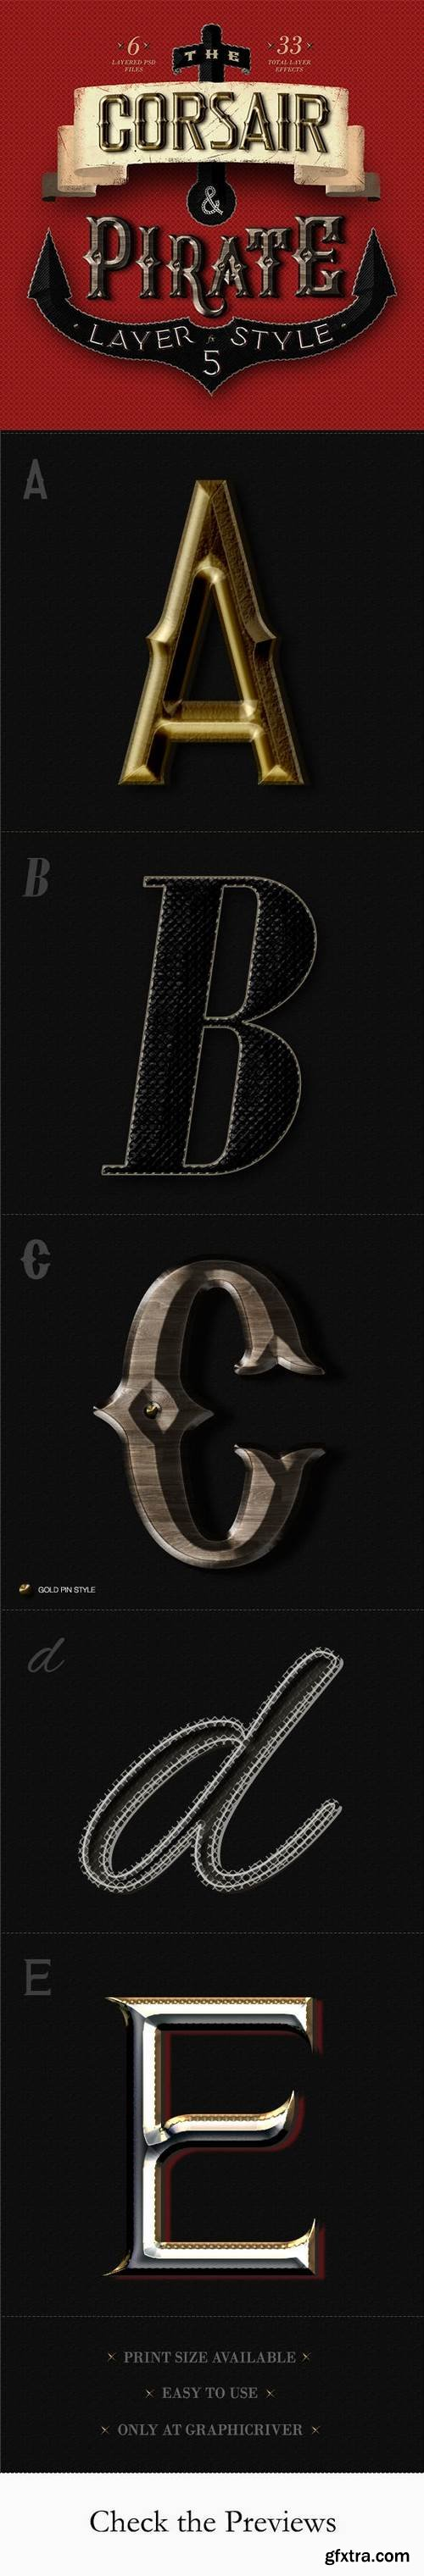 Graphicriver - The Corsair and Pirate Photoshop Text Effect 21372619